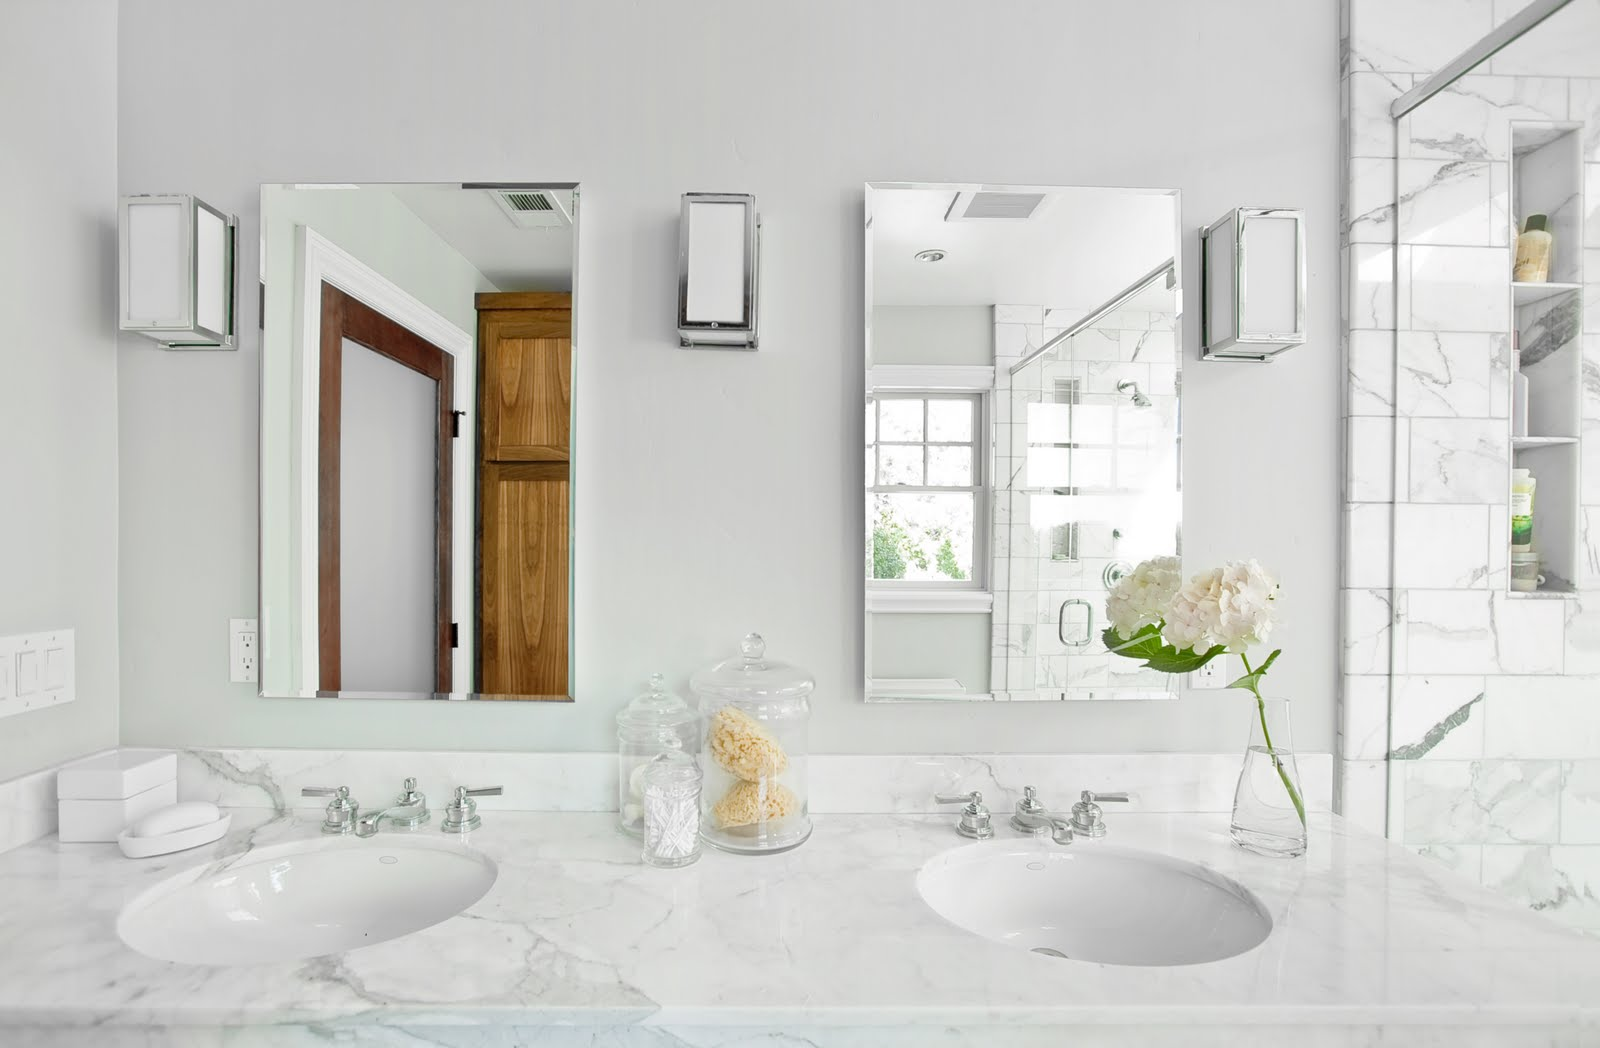 carrara marble vanity with deep sinks and stainless steel faucets a pair of frameless mirrors three - Bathroom Ideas Marble